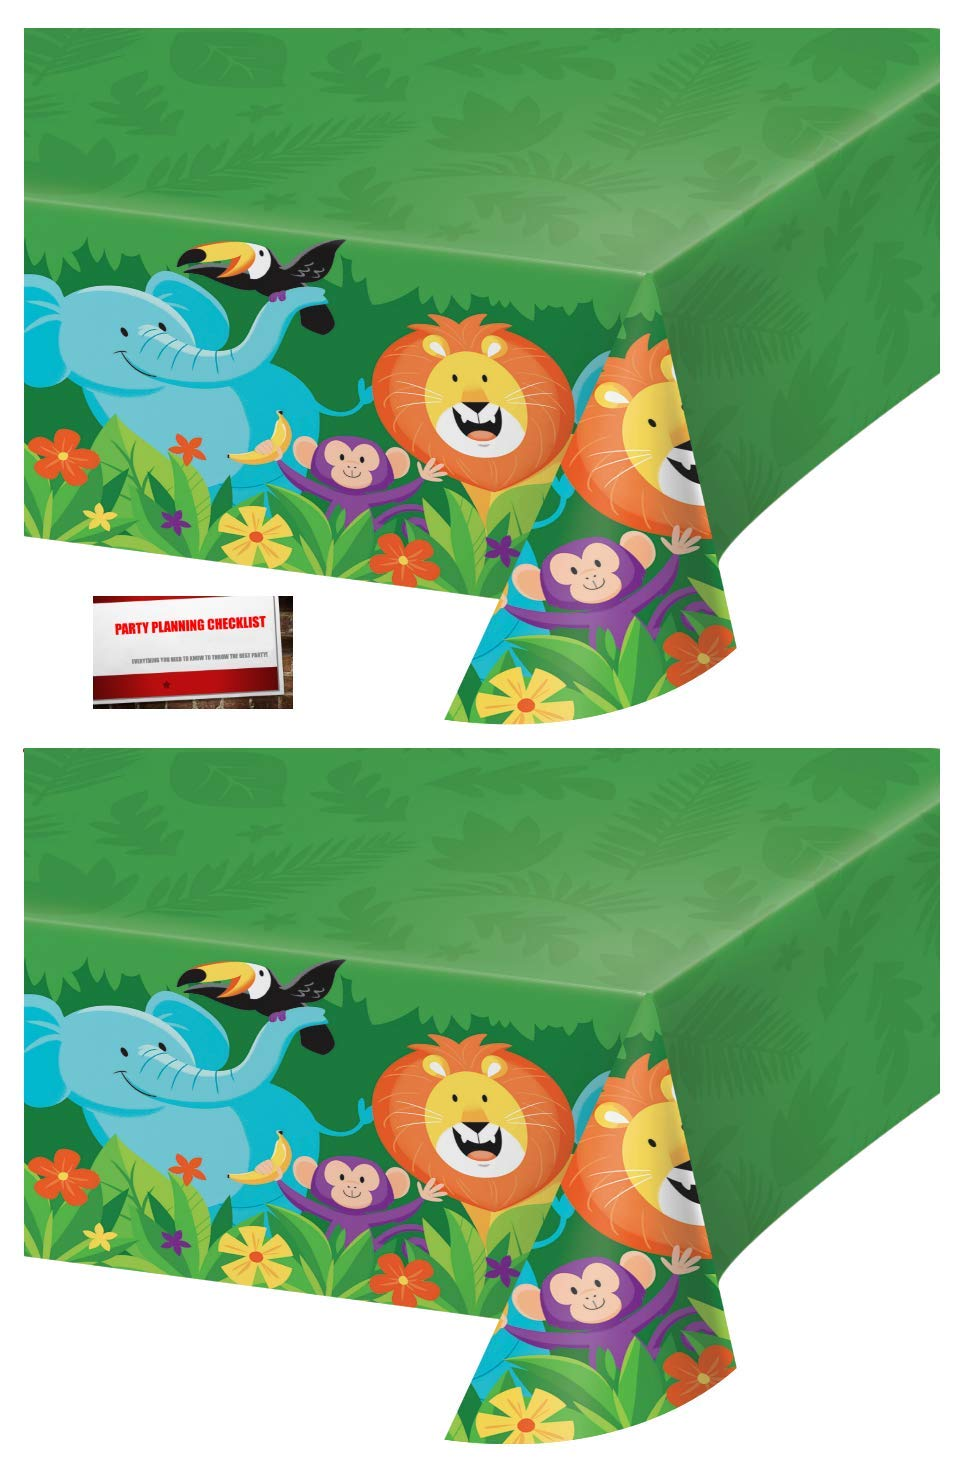 (2 Pack) Jungle Forest Animals Safari Lion Elephant Monkey Birthday Plastic Table Cover 54 X 102 Inches (Plus Party Planning Checklist by Mikes Super Store) by Jungle Safari